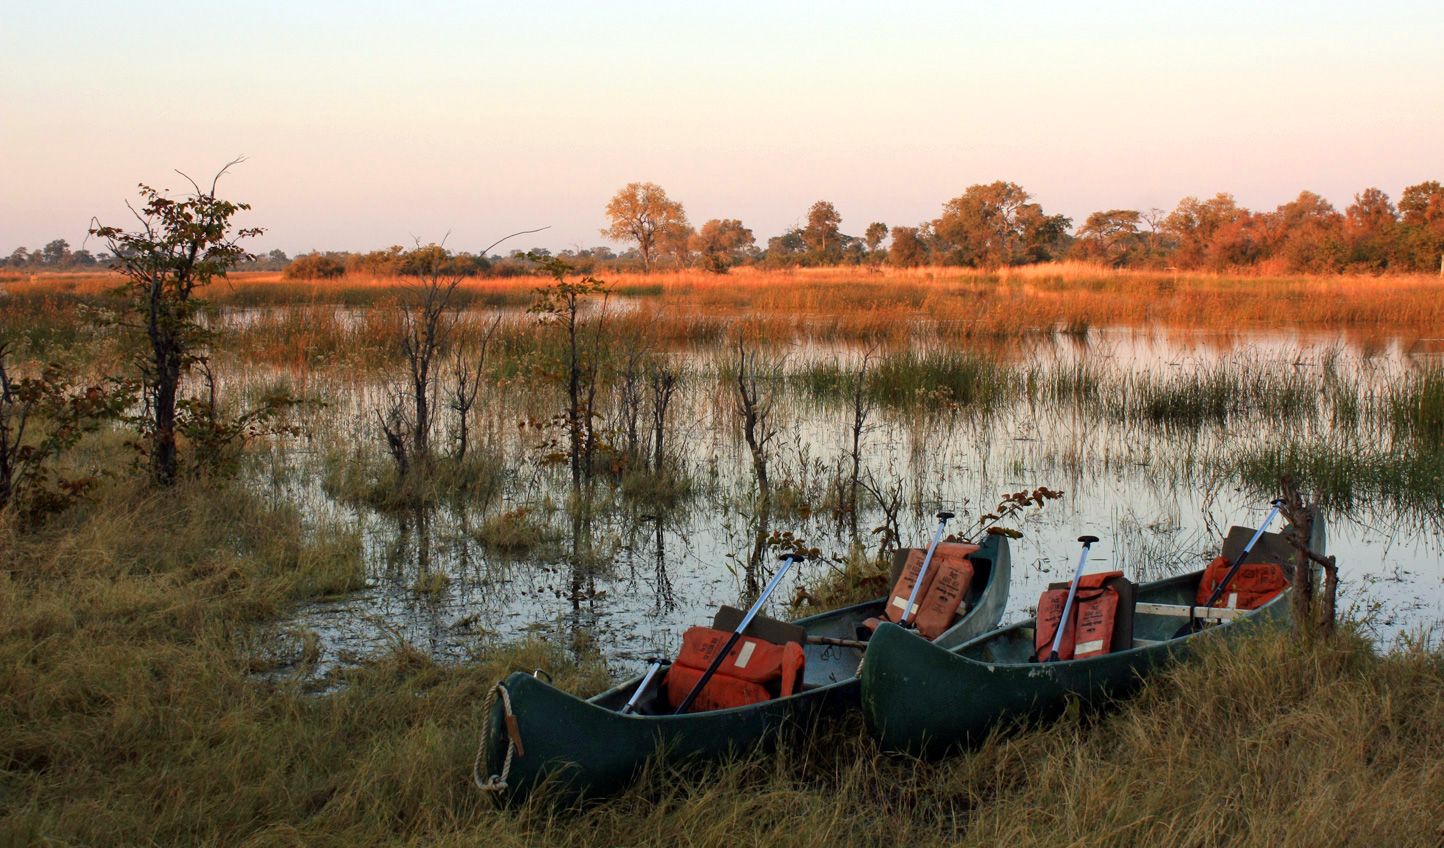 Welcome to Botswana's Okavango Delta